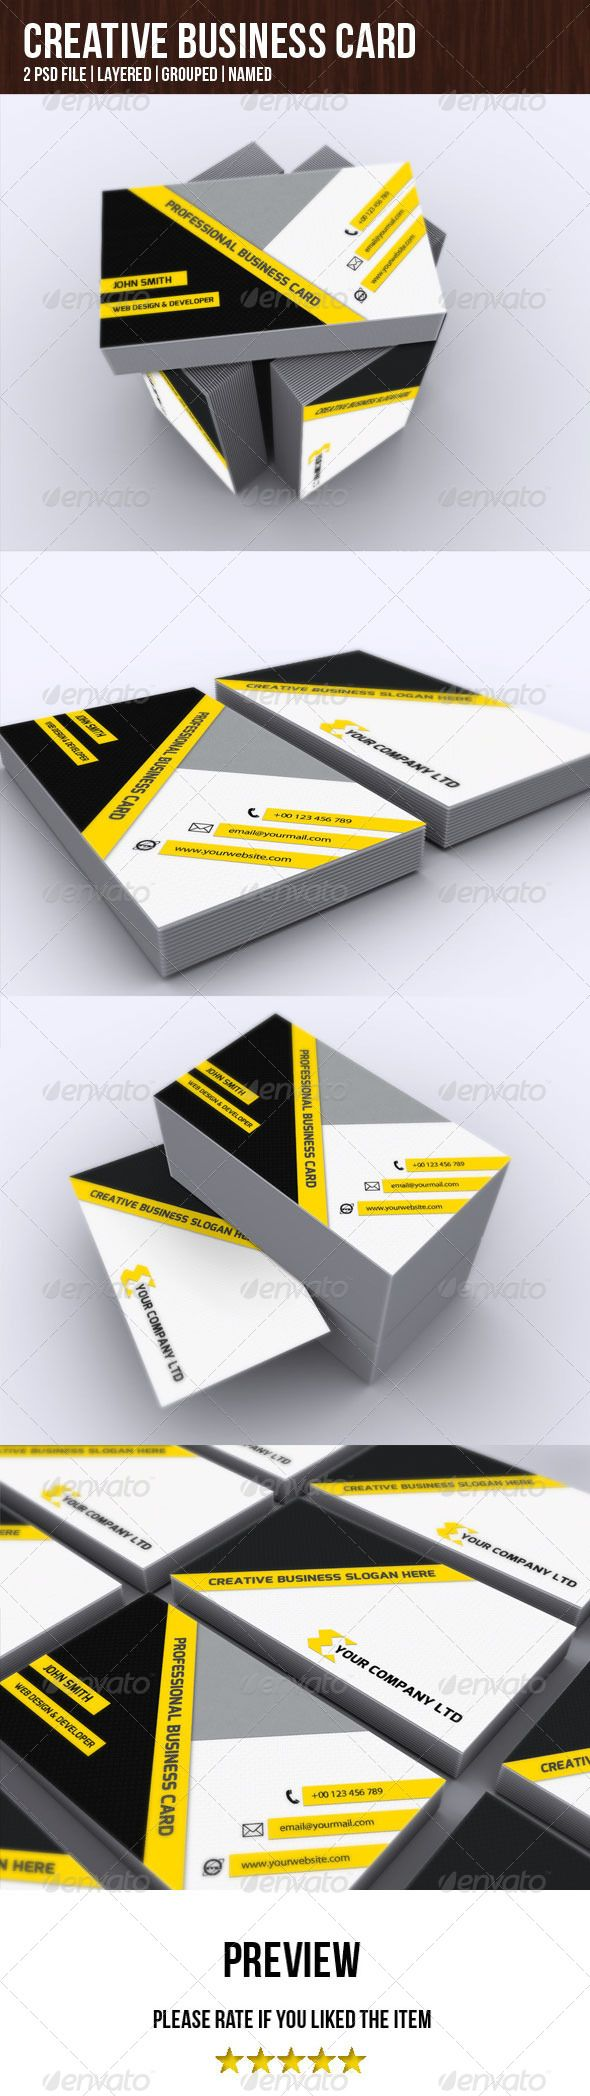 92 best print templates images on pinterest print templates creative business card graphicriver specifications size 3502 in pages 2 reheart Image collections